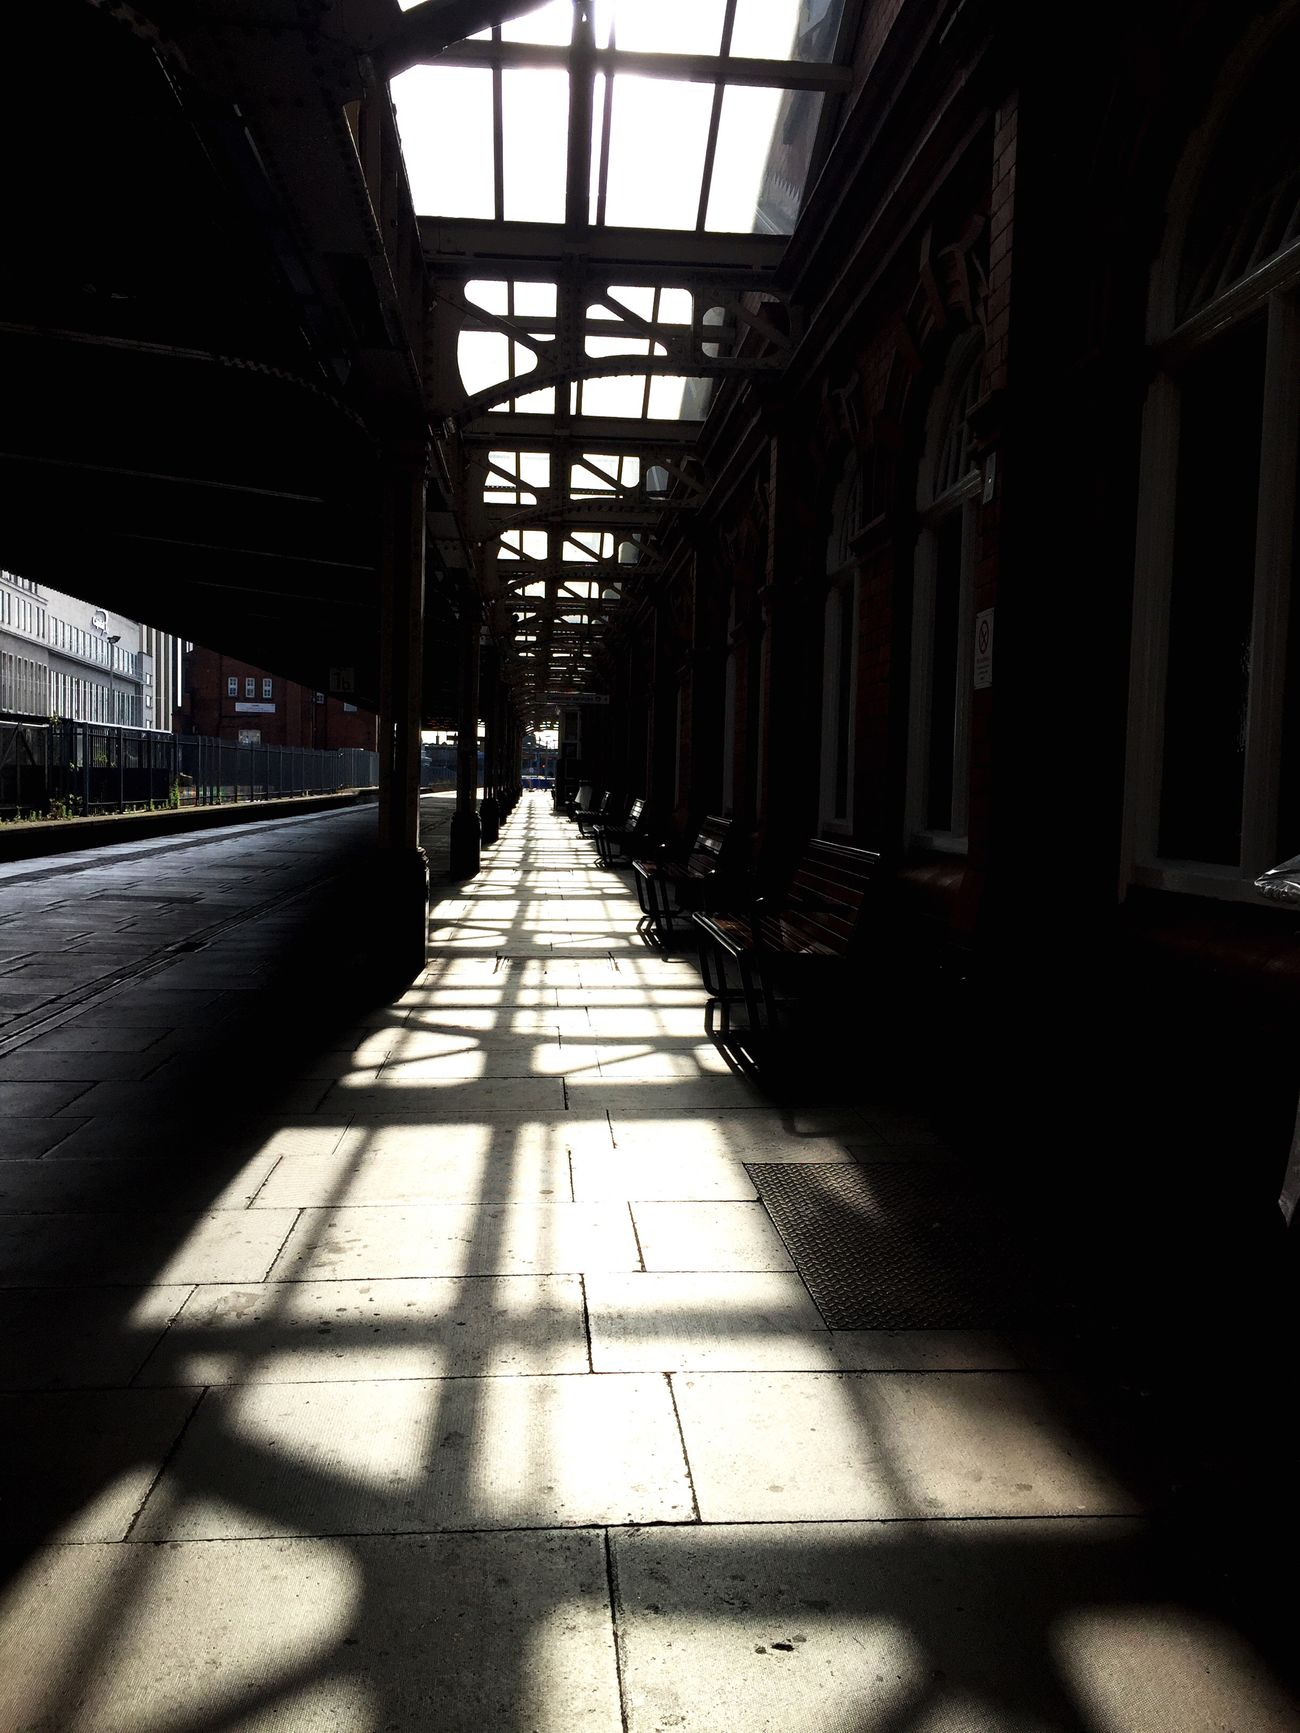 Trainstation Shadow Sunlight Architecture Light And Shadow Morning Day Indoors  Built Structure The Way Forward Window No People Architectural Column Daylight